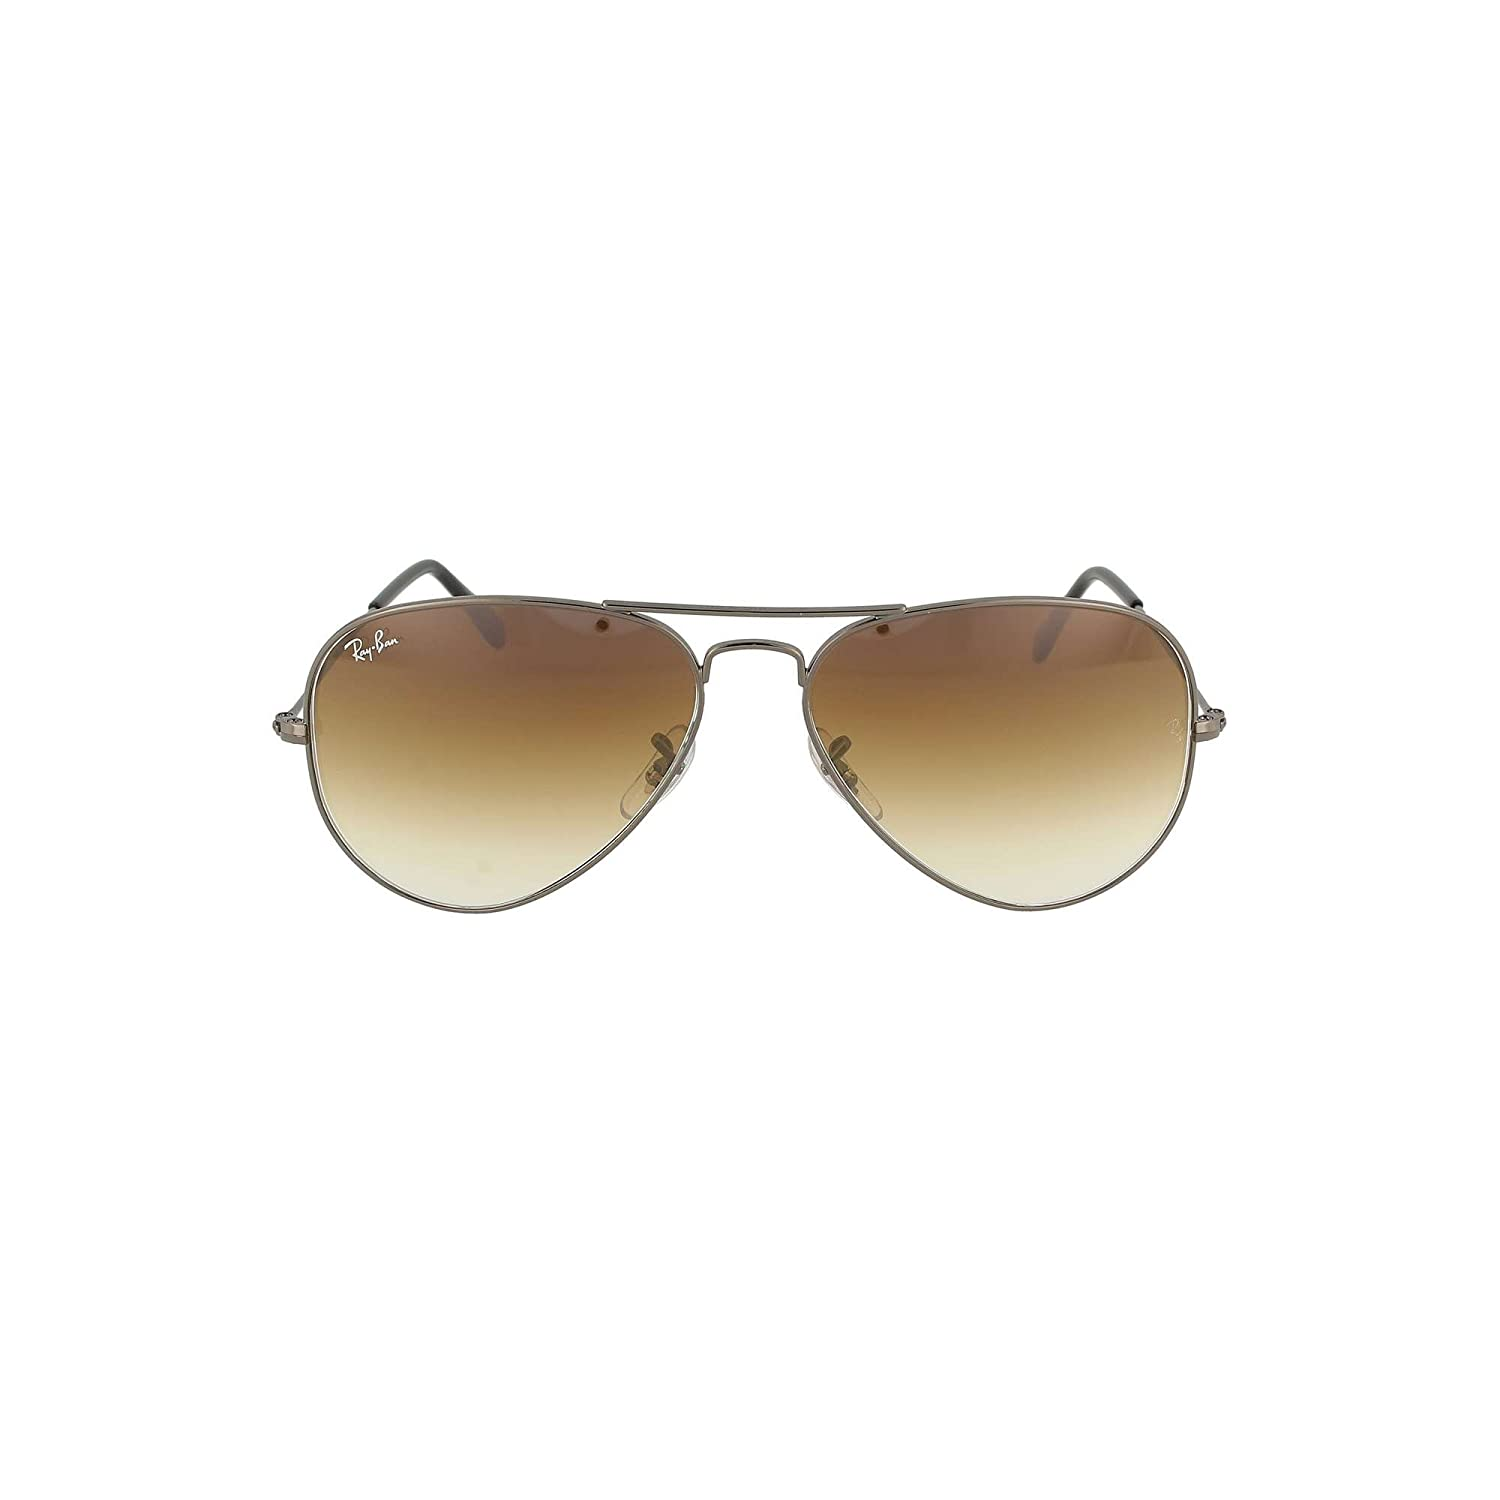 d01afa8734 Ray-Ban RB3025 004 51 Gunmetal RB3025 Aviator Sunglasses Lens Category 3  Size 5  Amazon.co.uk  Clothing